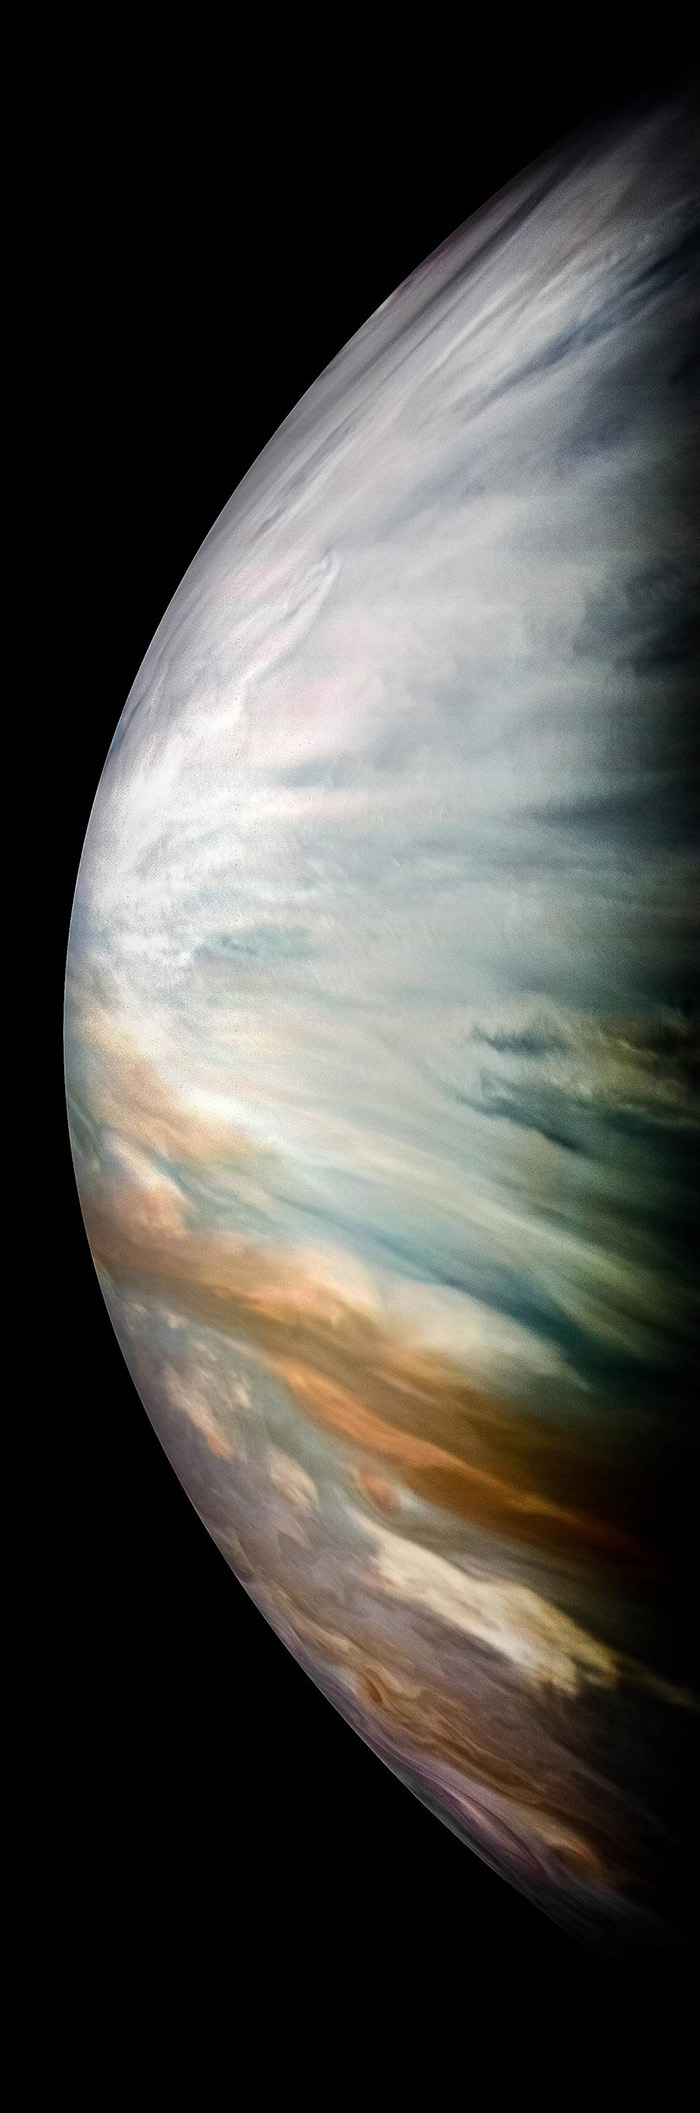 Jupiter's Equator Photo